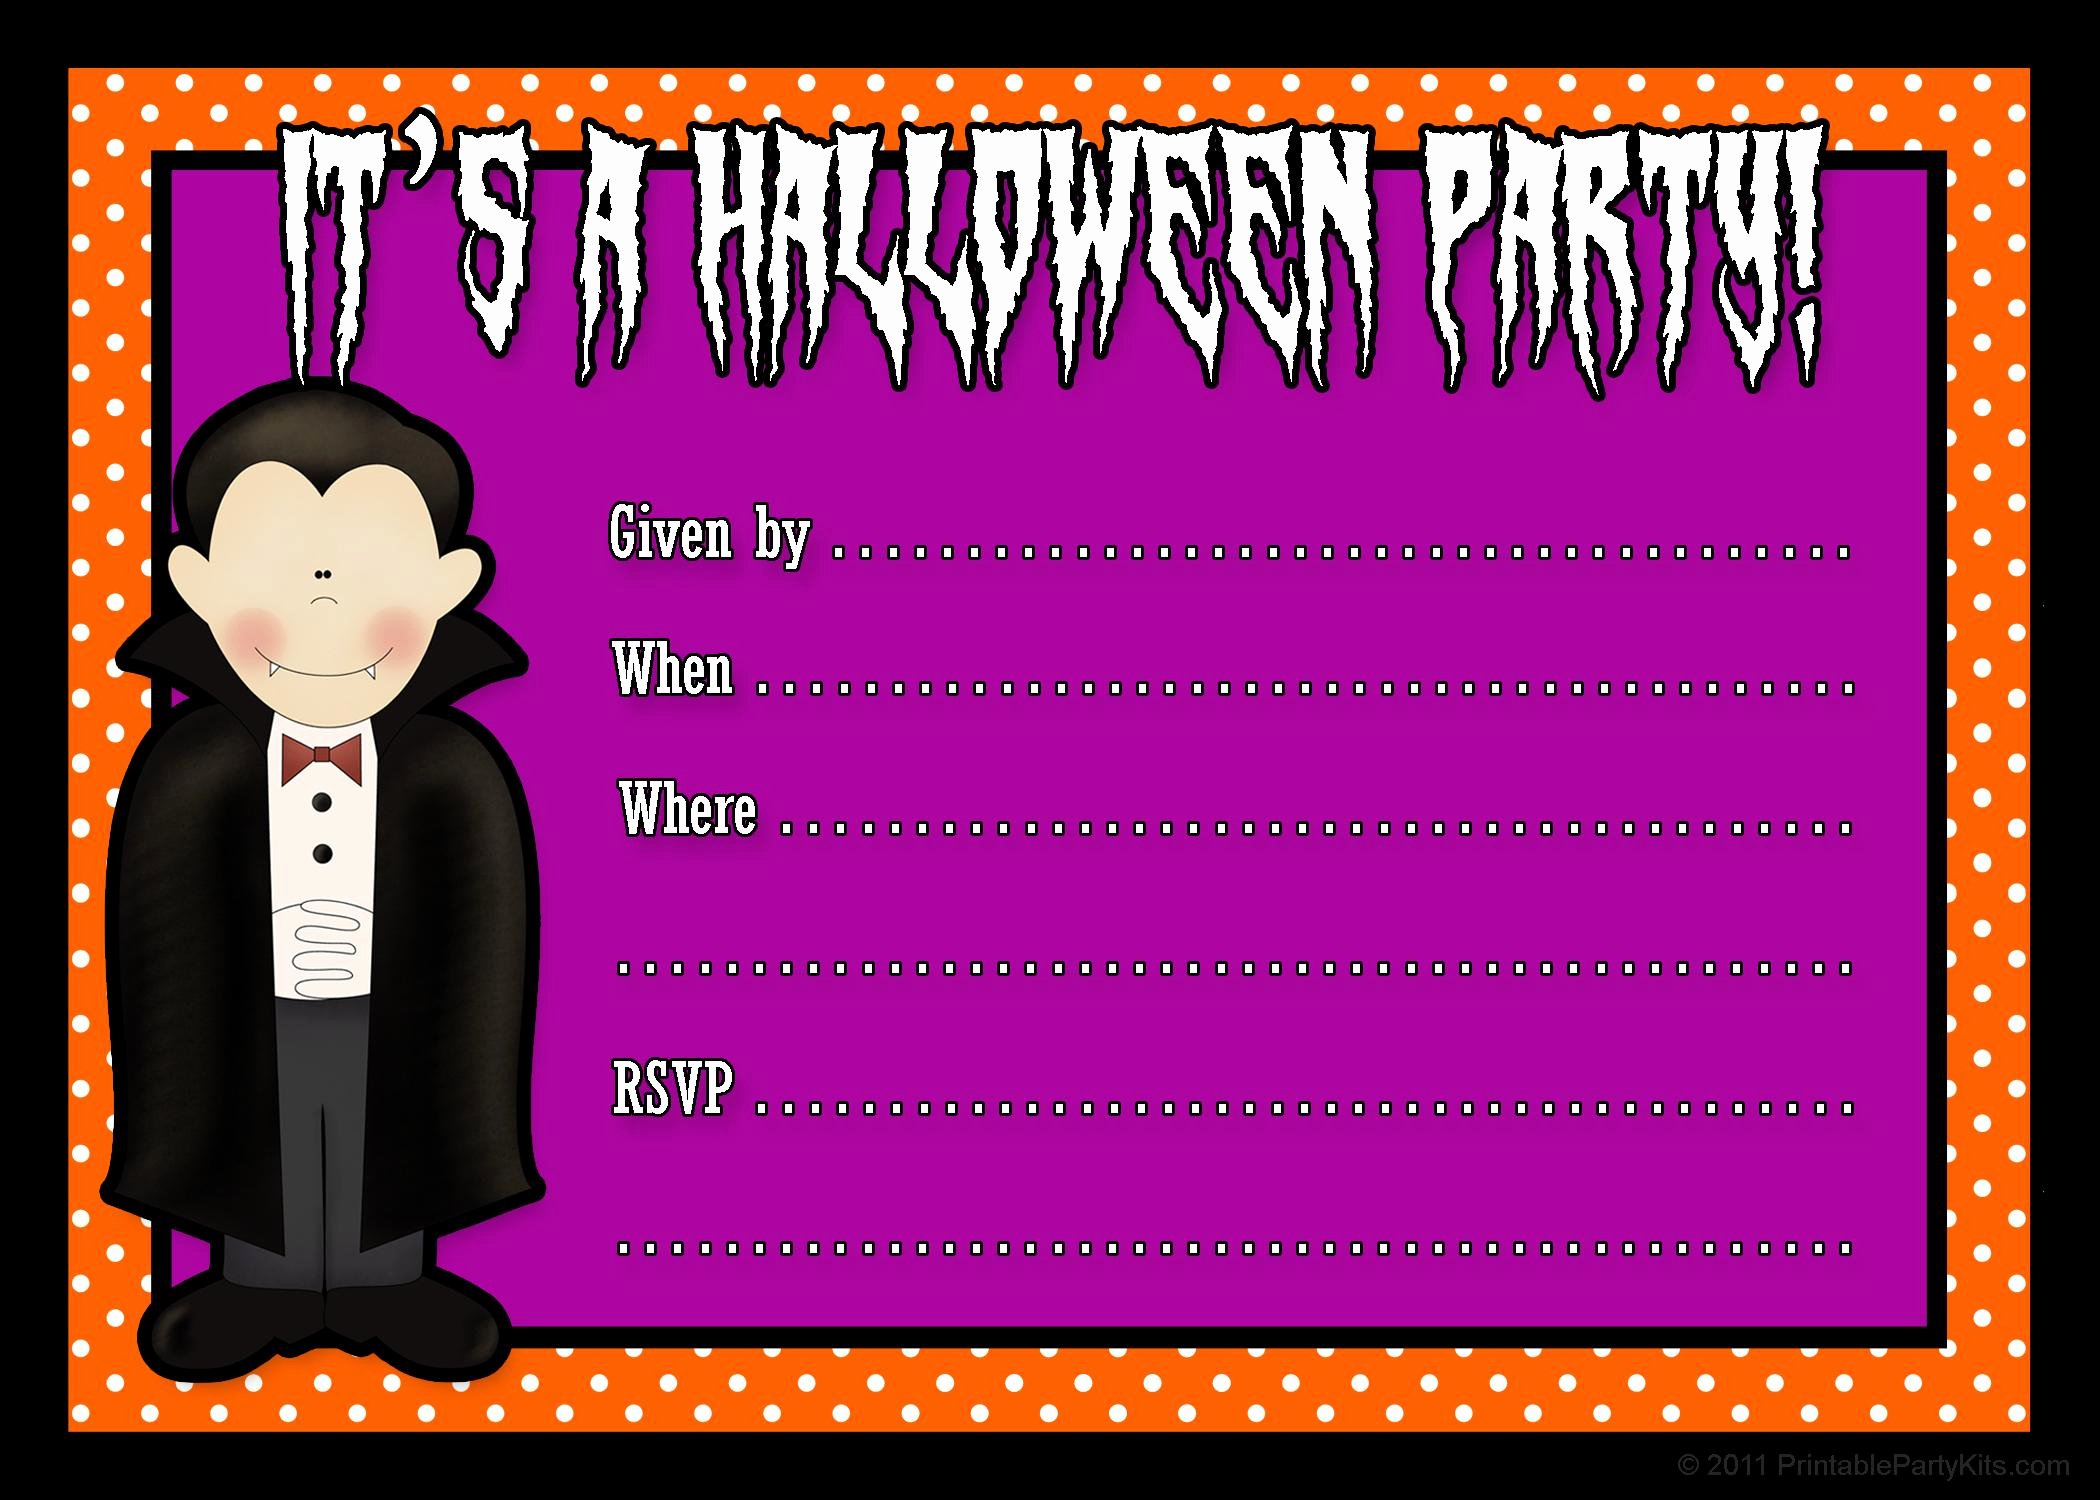 Halloween Party Invitations Template Inspirational Halloween Party Invitation Wording